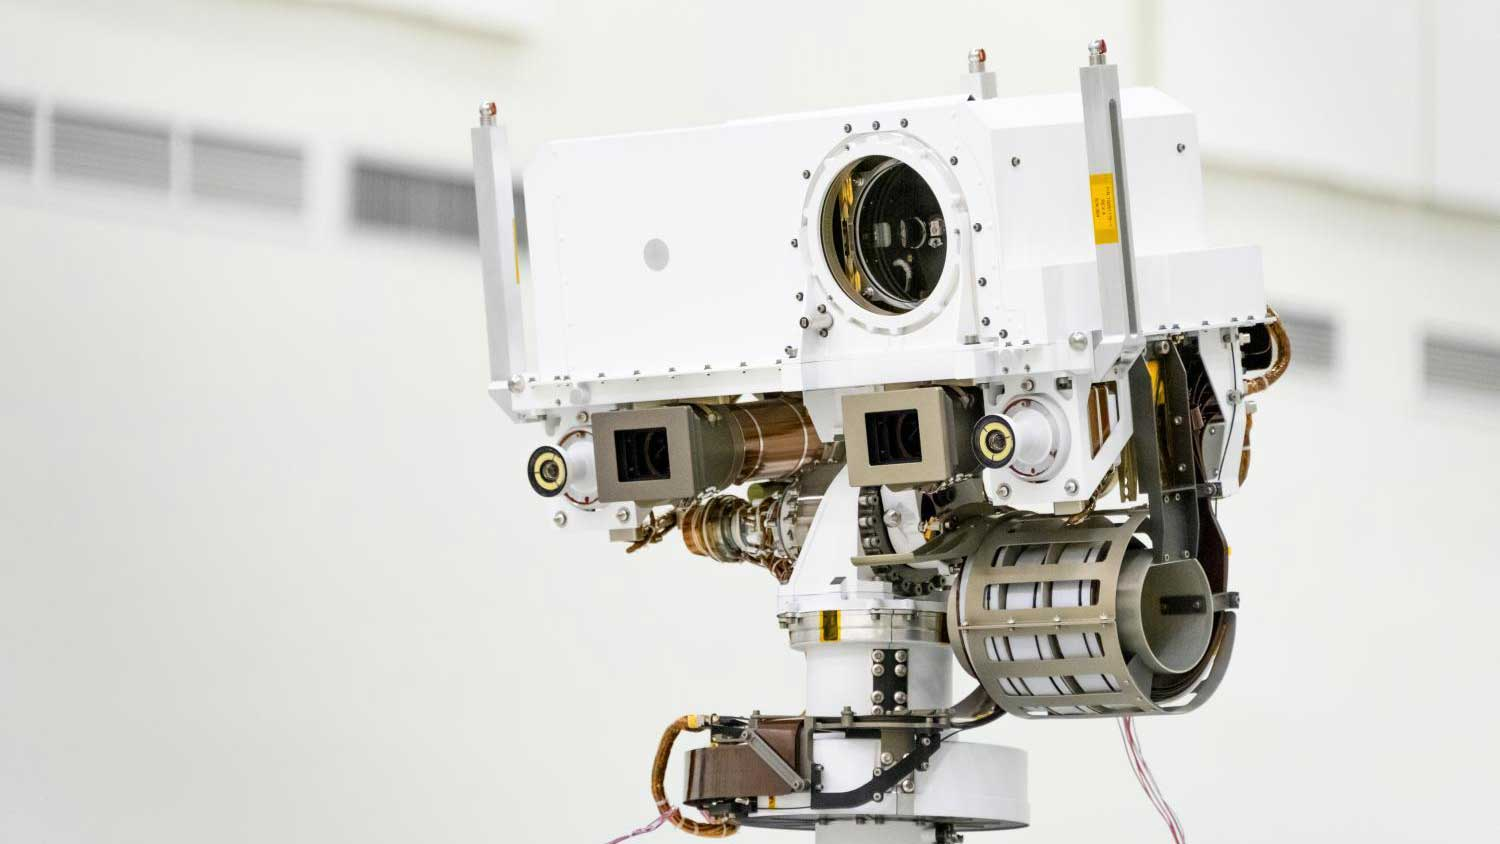 This image, taken in the Spacecraft Assembly Facility's High Bay 1 at the Jet Propulsion Laboratory in Pasadena, California, on July 23, 2019, shows a close-up of the head of Mars 2020's remote sensing mast.